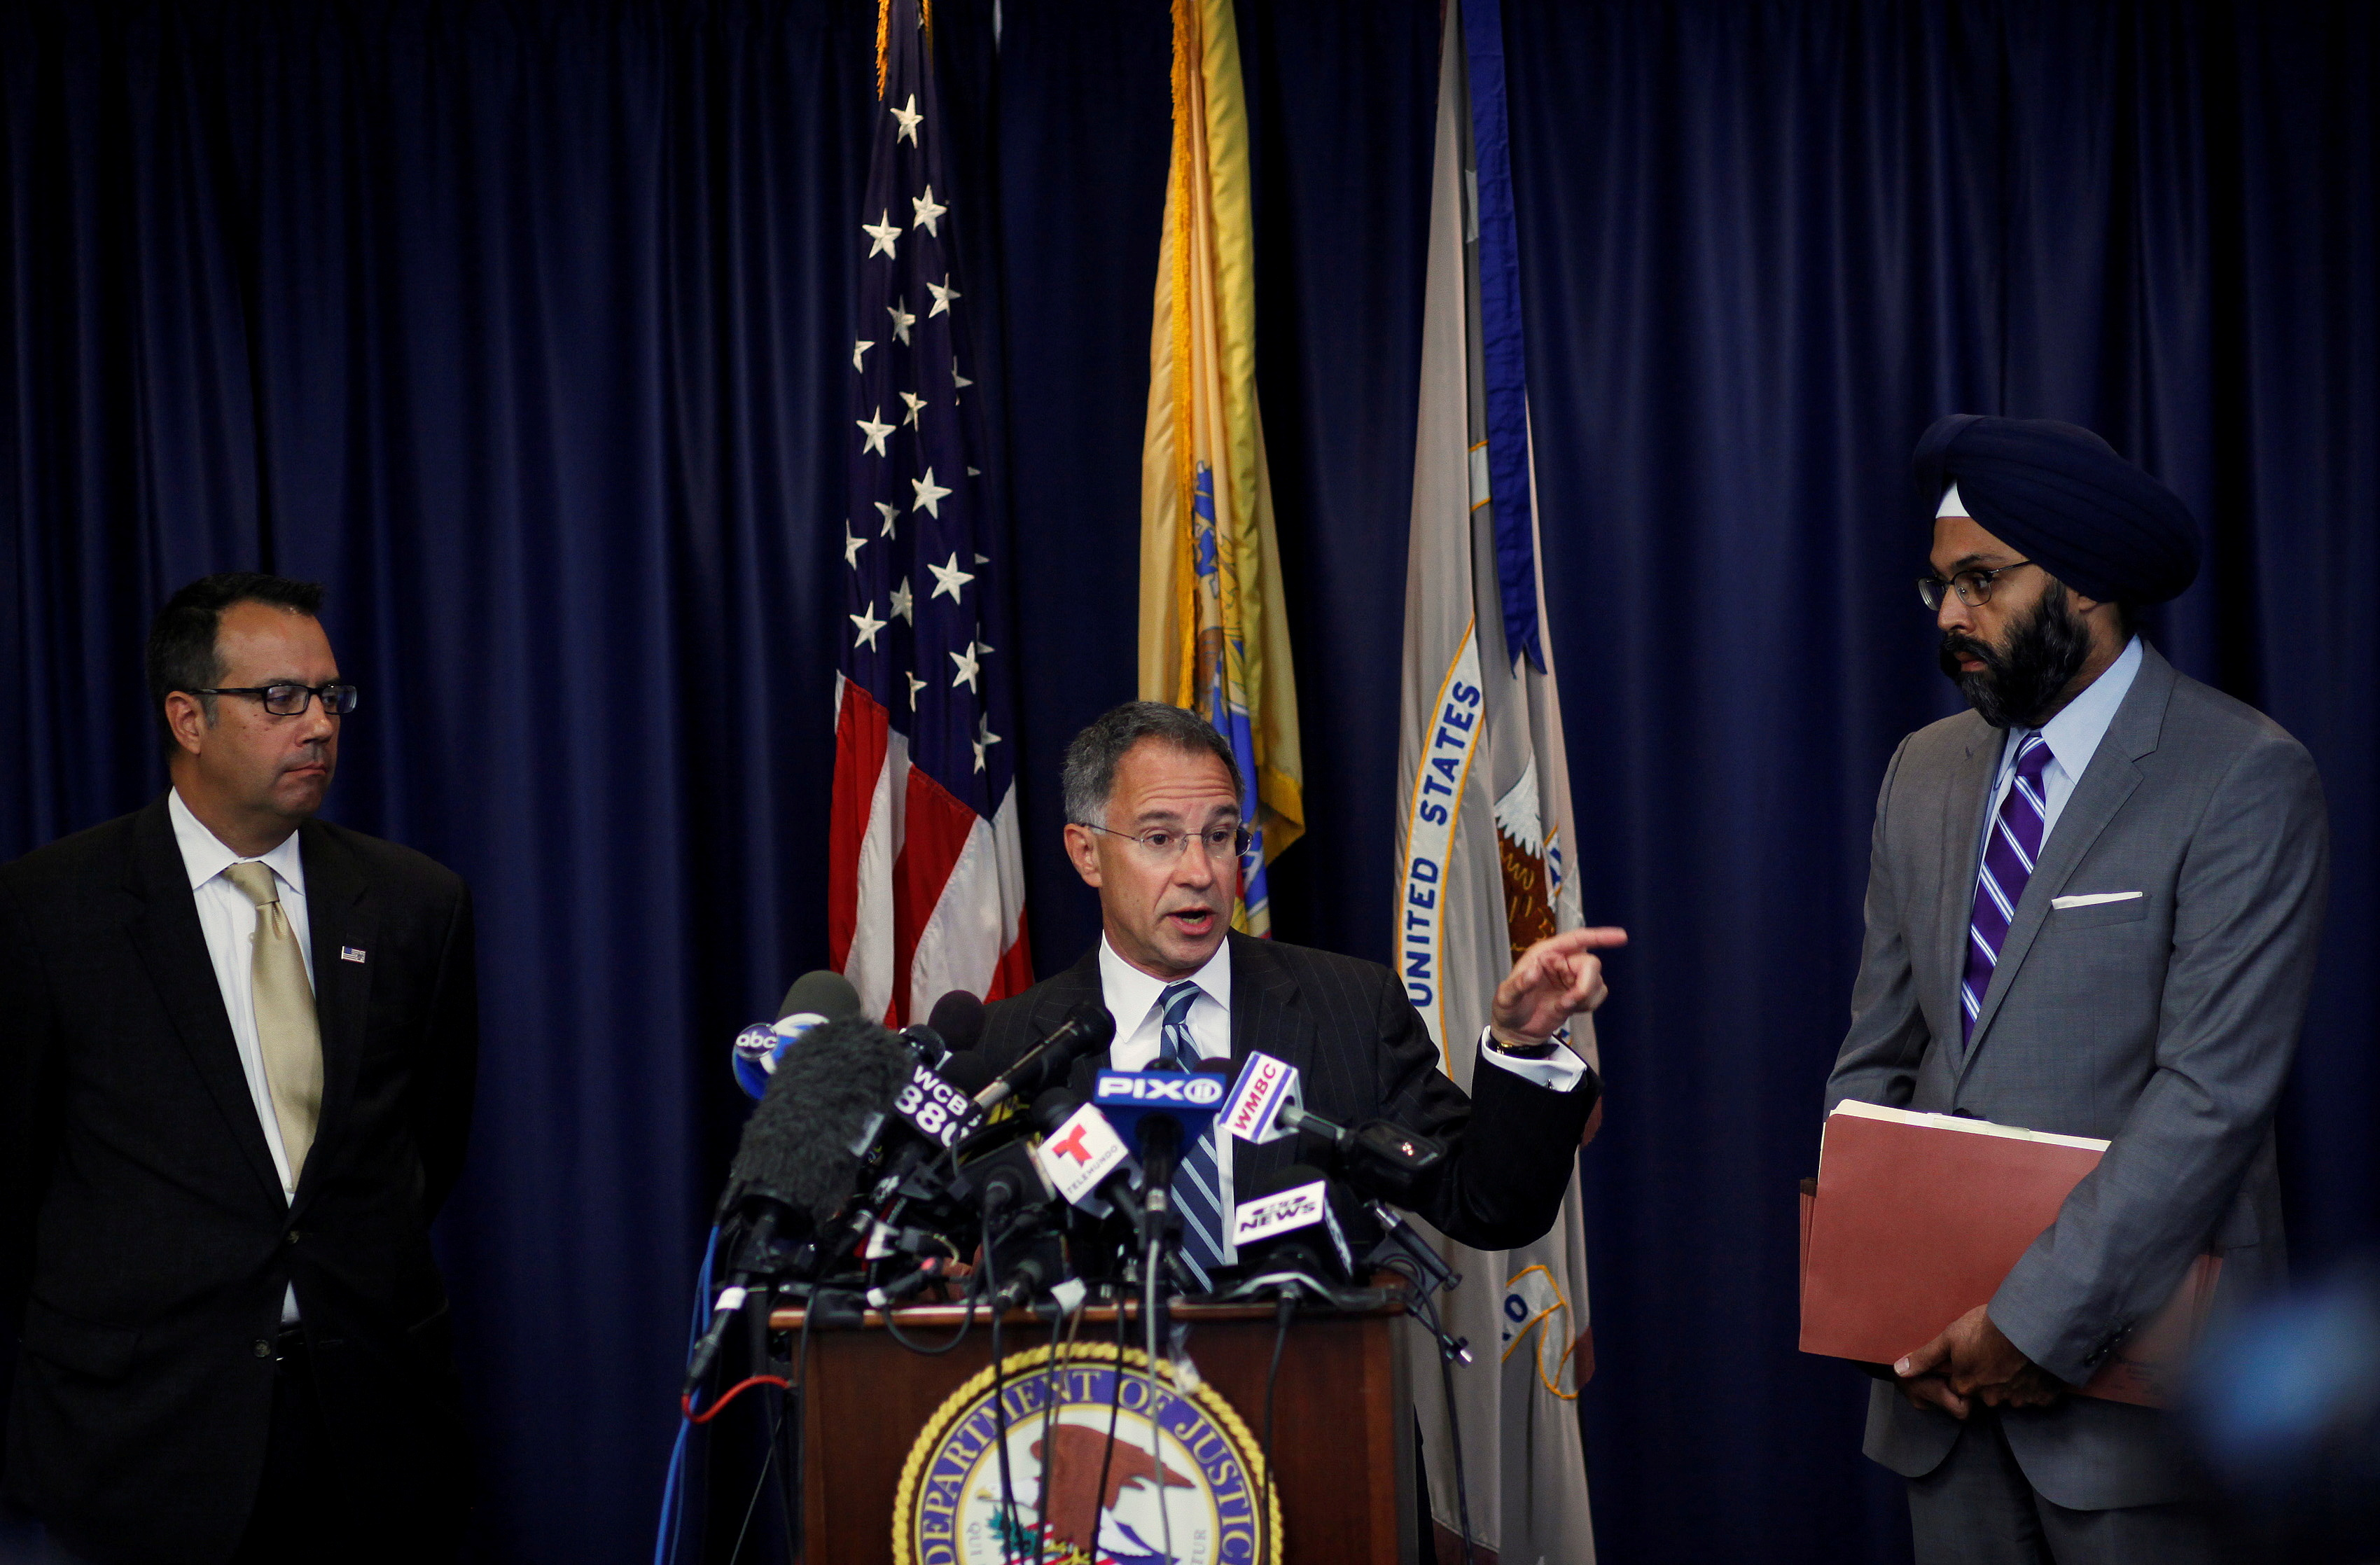 Gurbir Grewal (right) is seen in 2013 when he was assistant U.S. attorney in New Jersey. Also pictured are former New Jersey U.S. Attorney Paul  Fishman (center) and former U.S. Secret Service Special Agent James Mottola (at left), during a news conference in Newark, New Jersey, July 25, 2013.  REUTERS/Eduardo Munoz